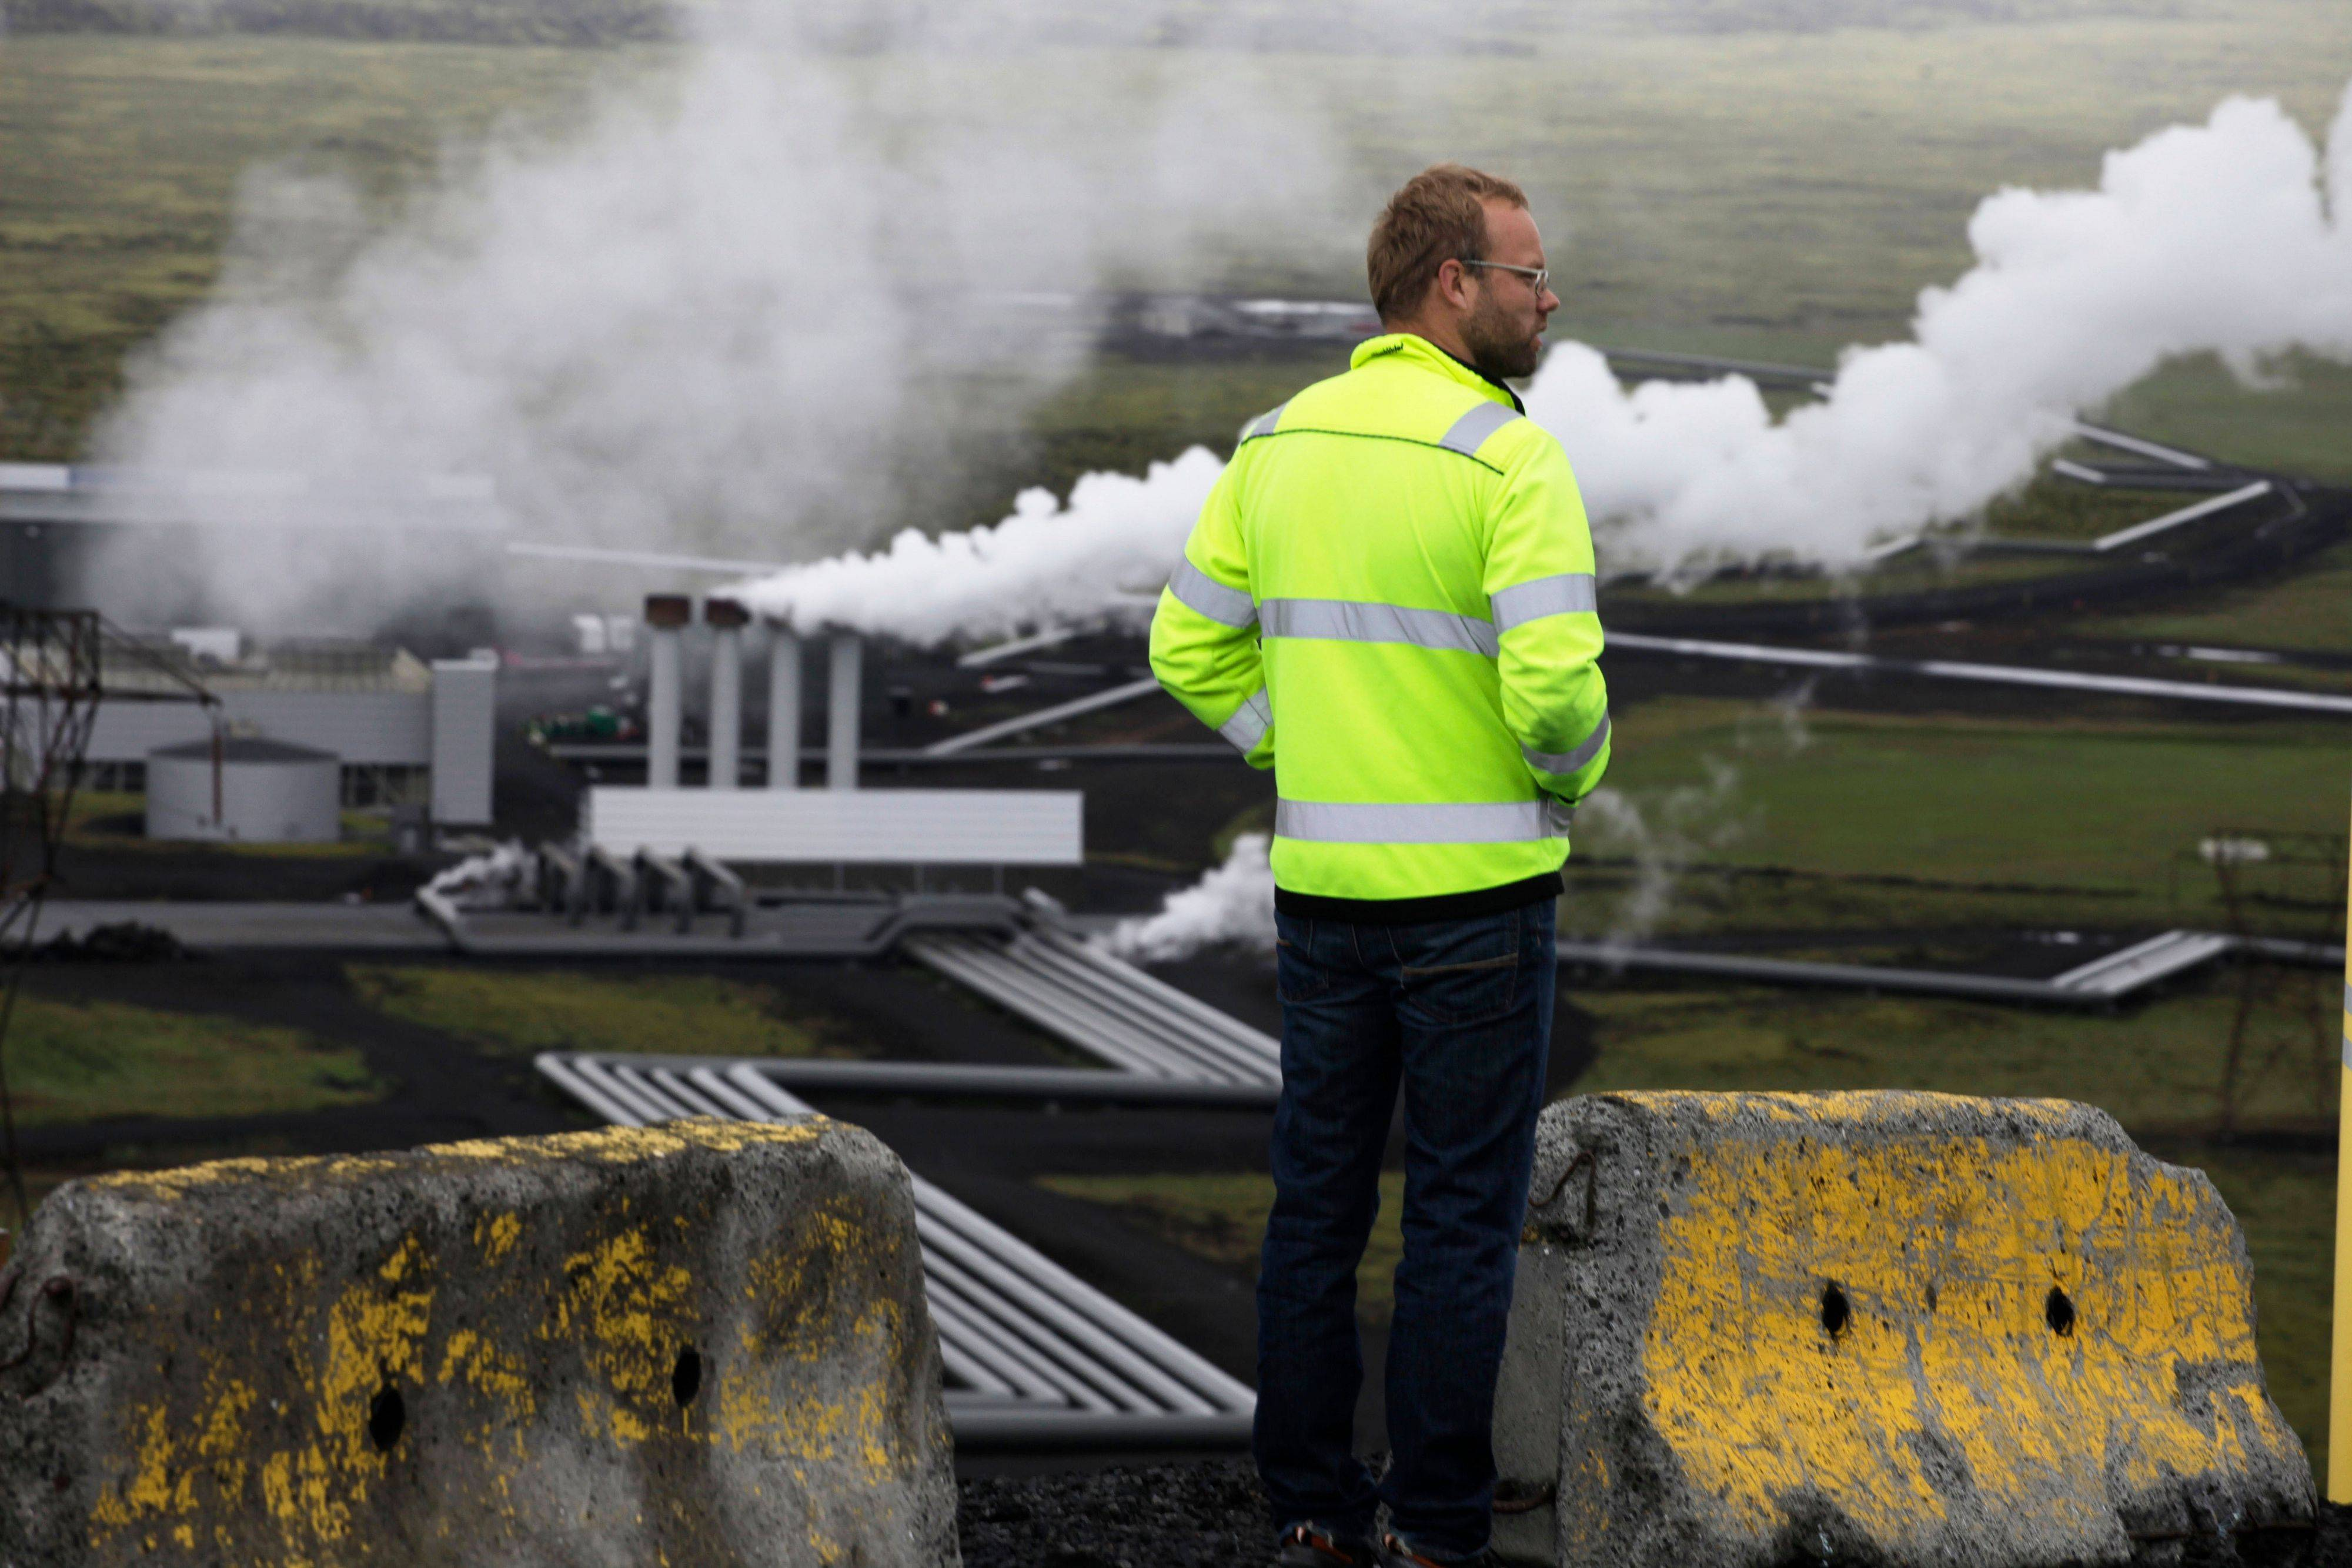 Bergur Sigfusson, the CarbFix experiment's technical manager, surveys Reykjavik Energy's Hellisheidi geothermal power plant in Iceland. CarbFix's scientists will separate carbon dioxide from the volcanic field's steam and pump it underground to react with porous basalt rock, forming limestone, to see how well the gas most responsible for global warming can be locked away in harmless form.